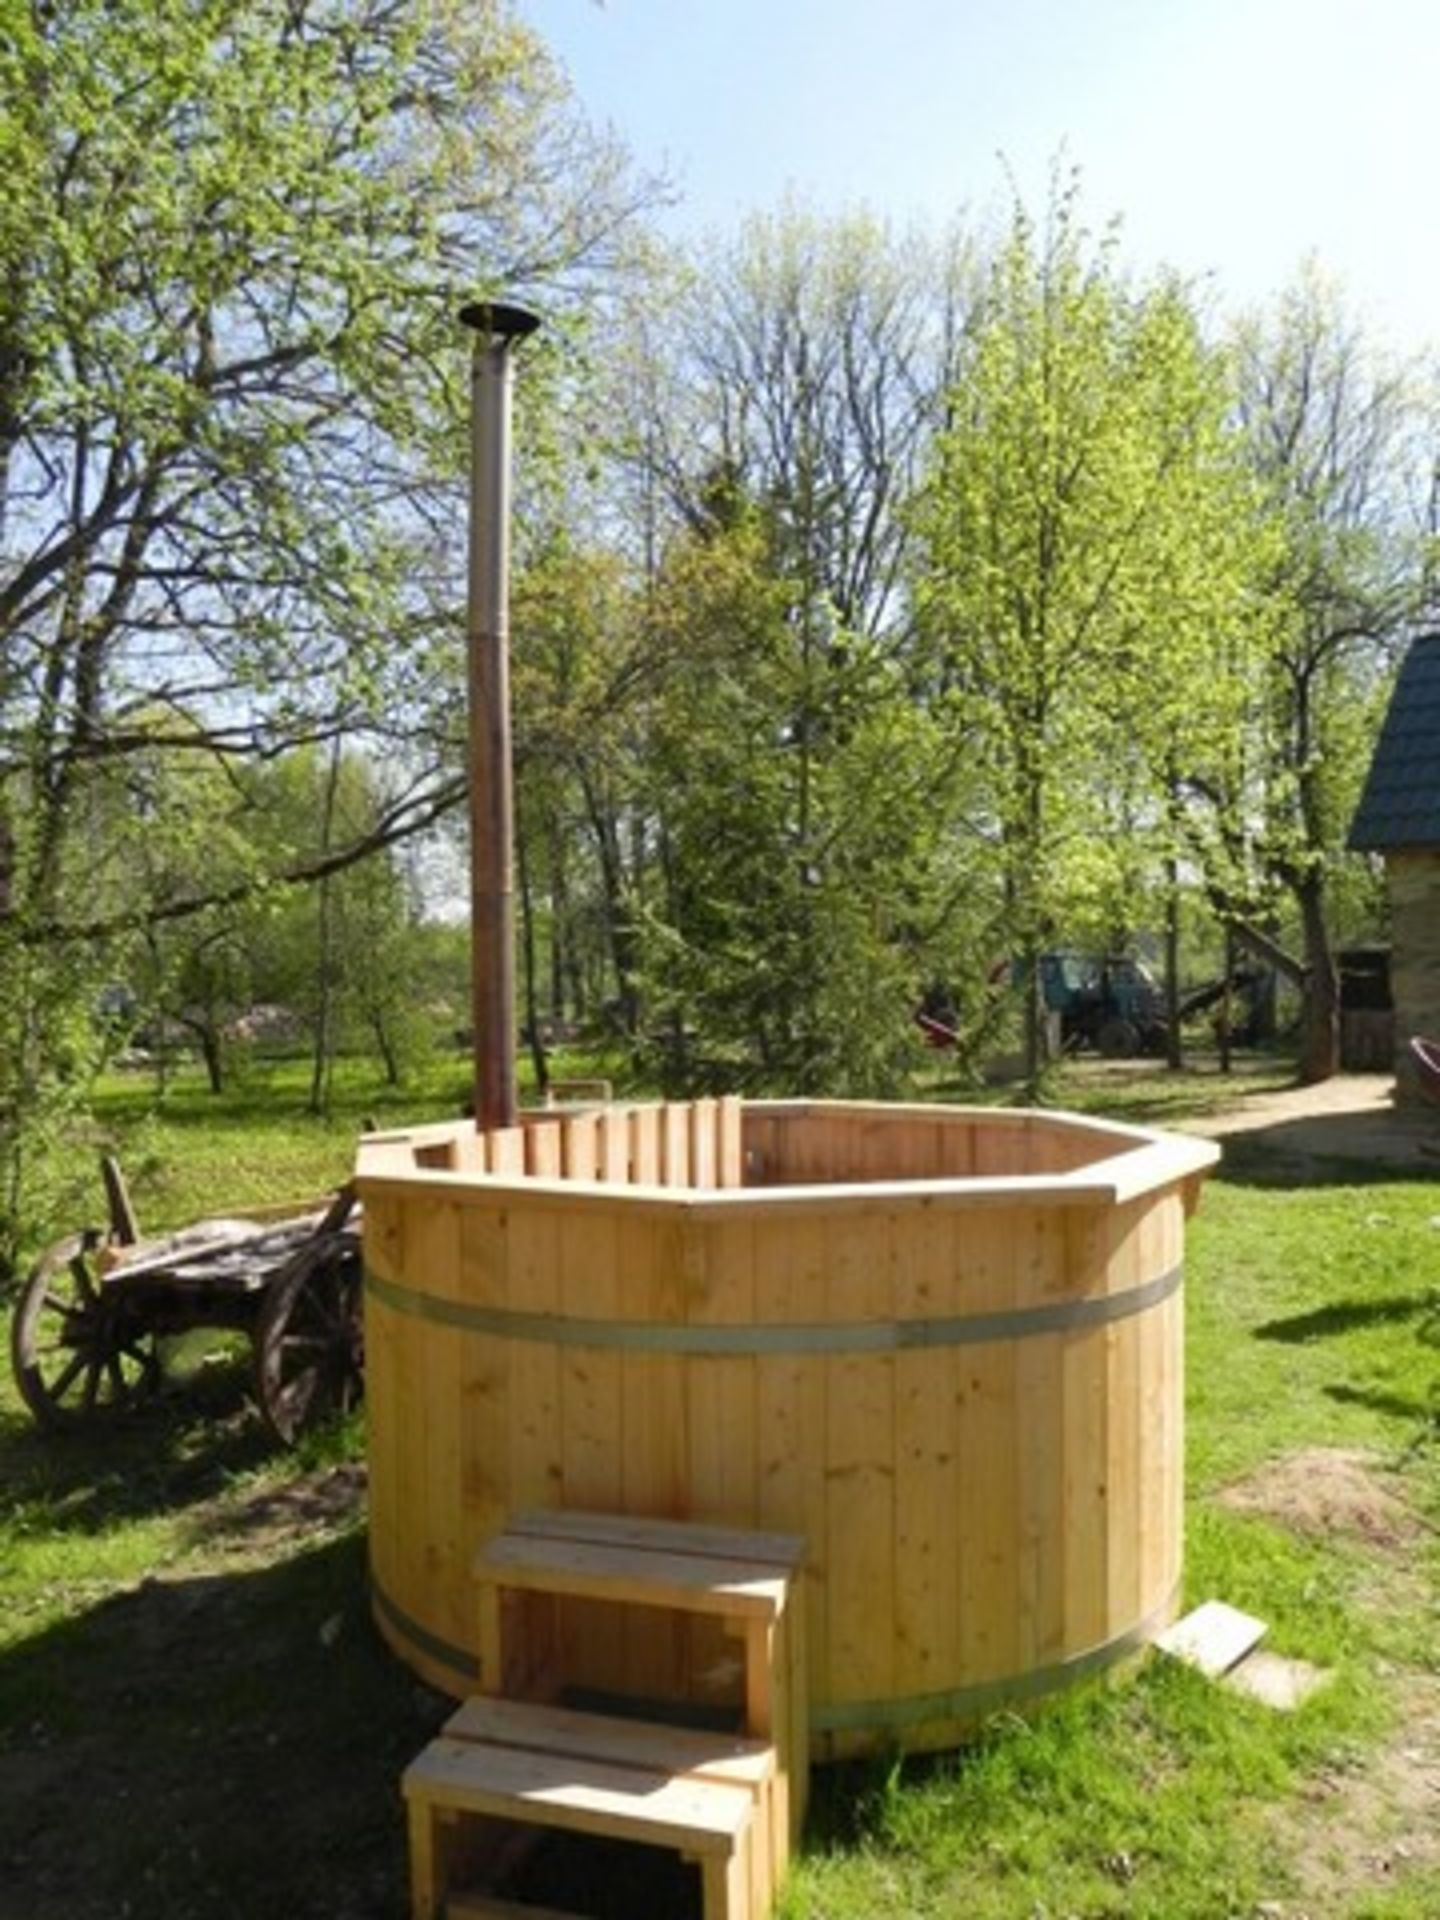 + VAT Brand New 2.2m Spruce Hot Tub with Heater Inside - Stainless Steel Heater with Chimney - - Image 3 of 3